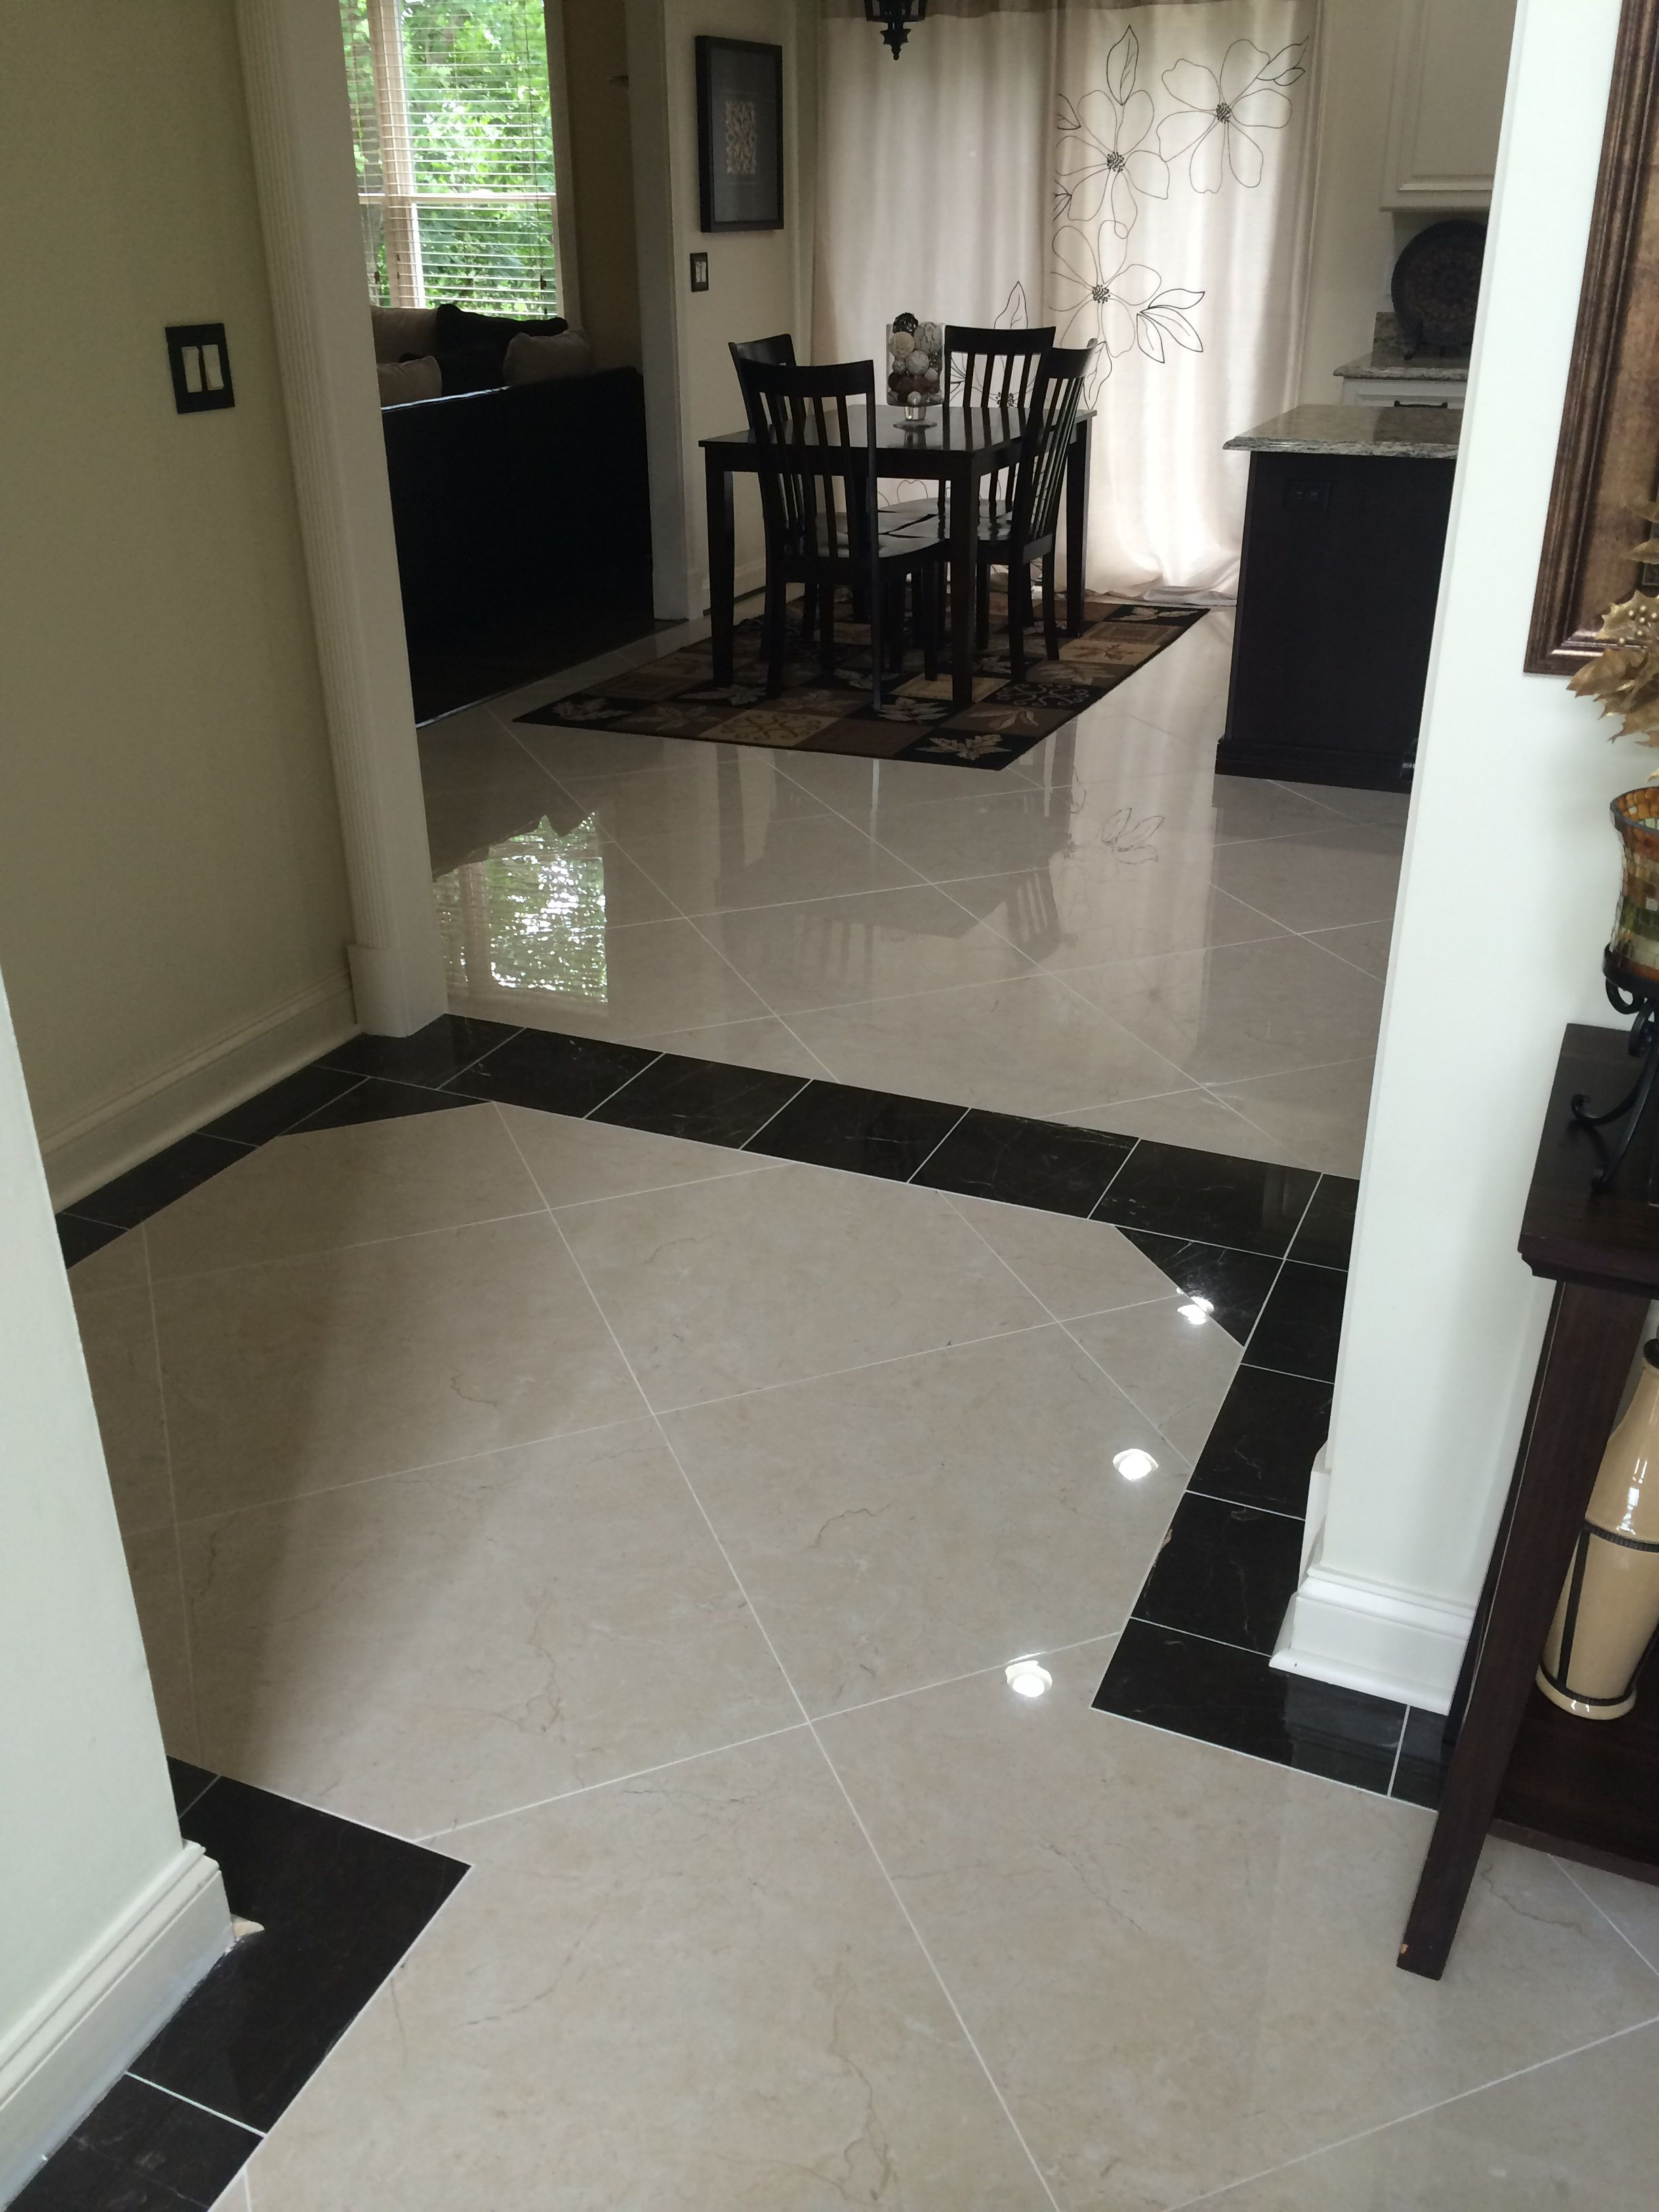 New Tile Crema Marfil 24x24 With A Border Of St Laurent Oriental